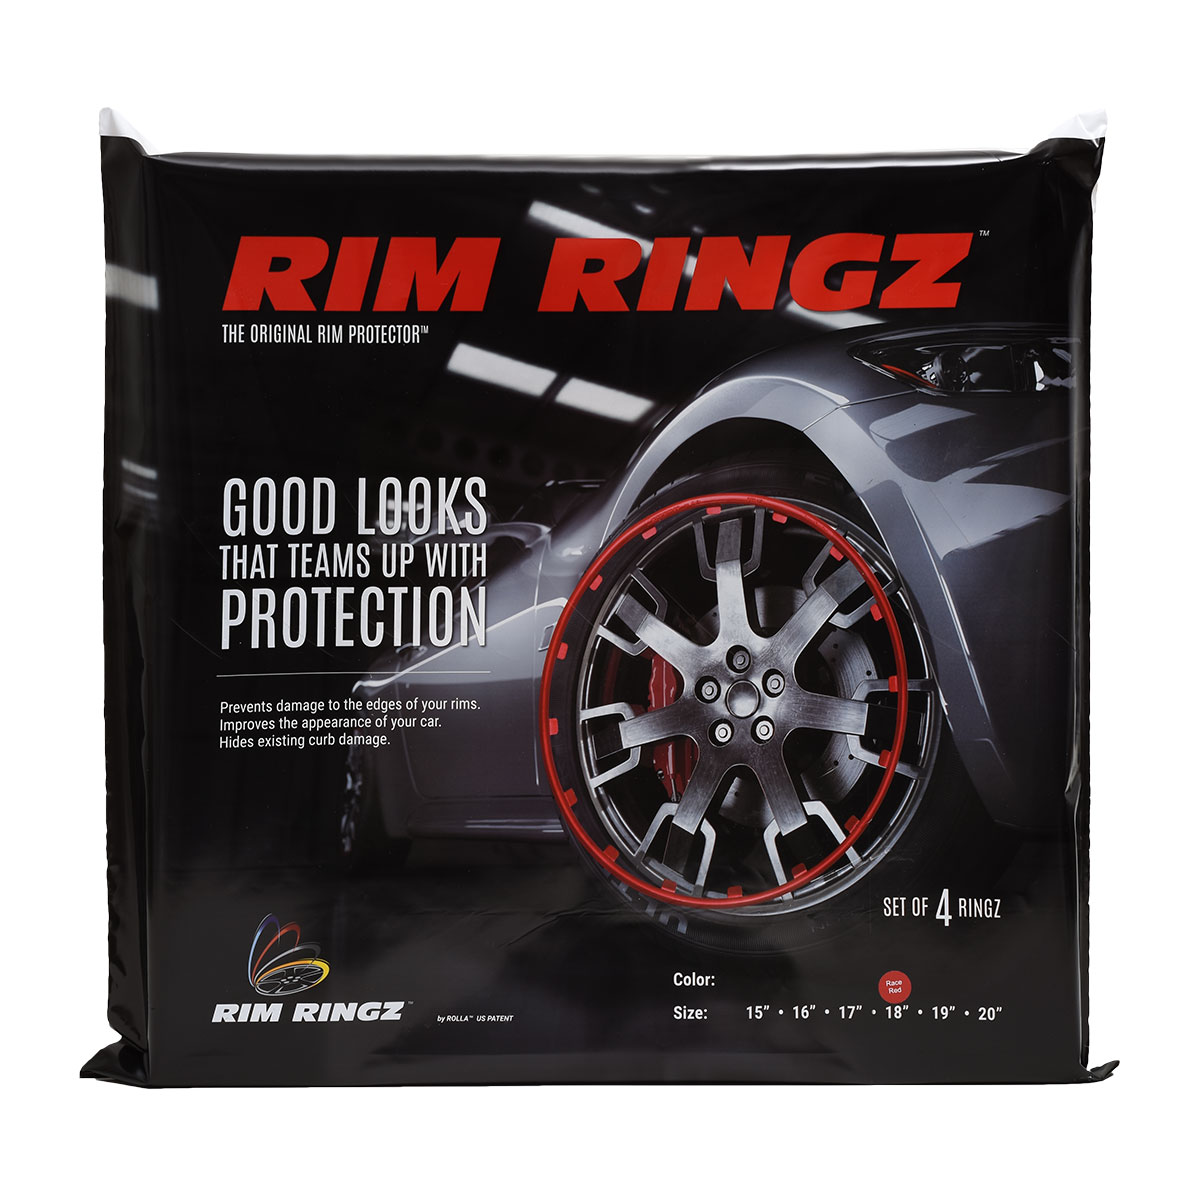 Best Alloy Wheel Rim Protector Set Rim Ringz